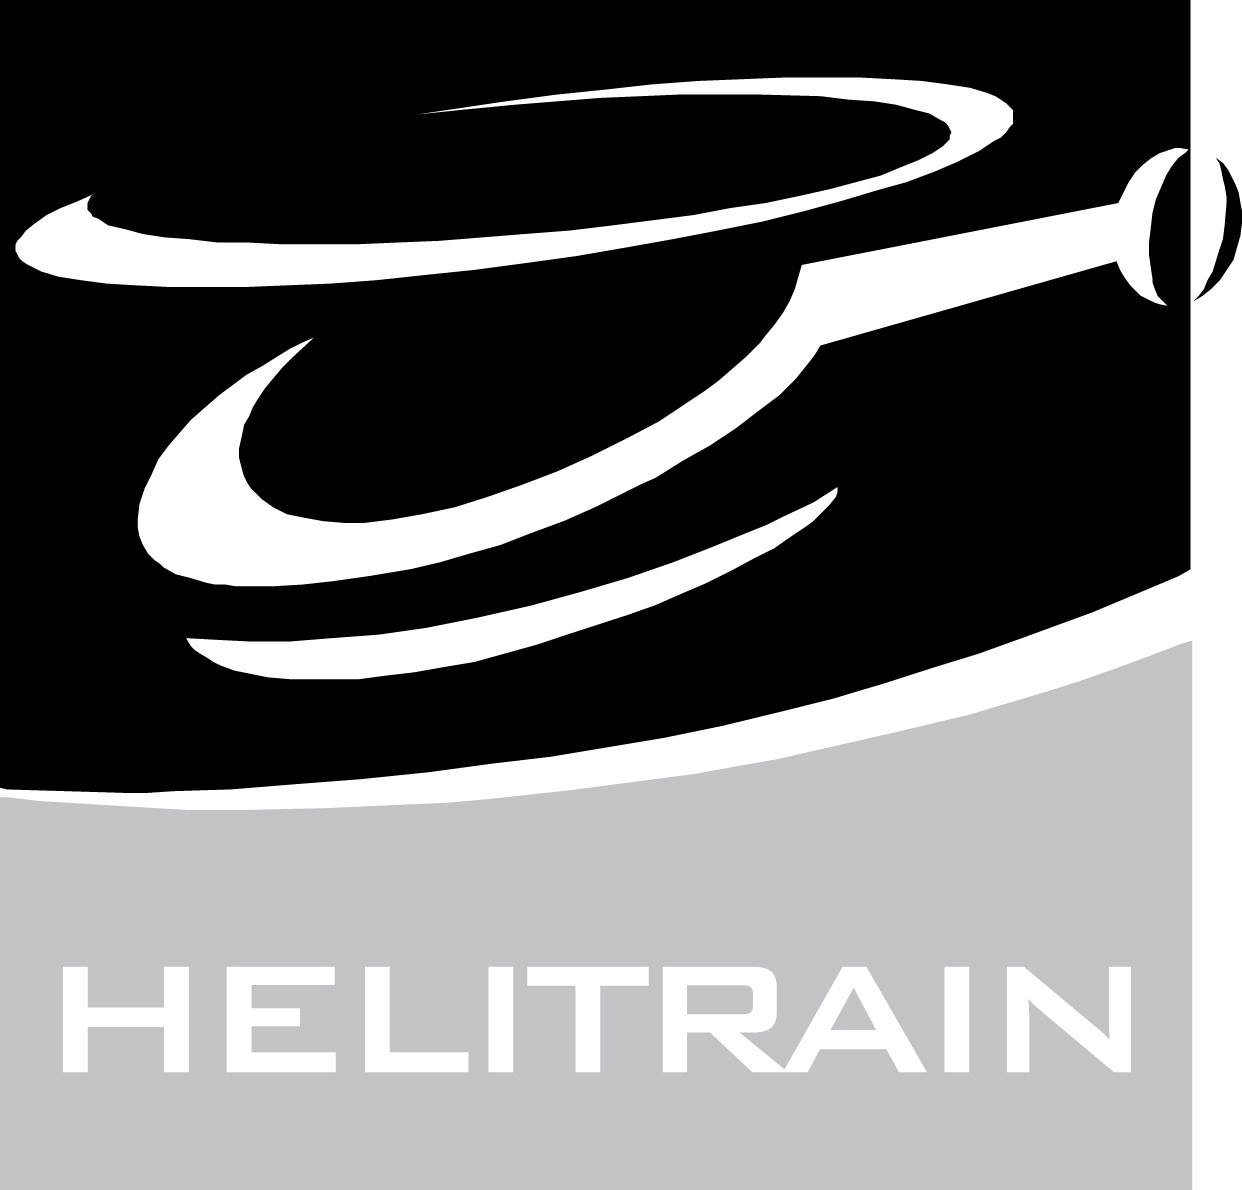 HeliTrain | Quality Helicopter Training - Waikato, NZ